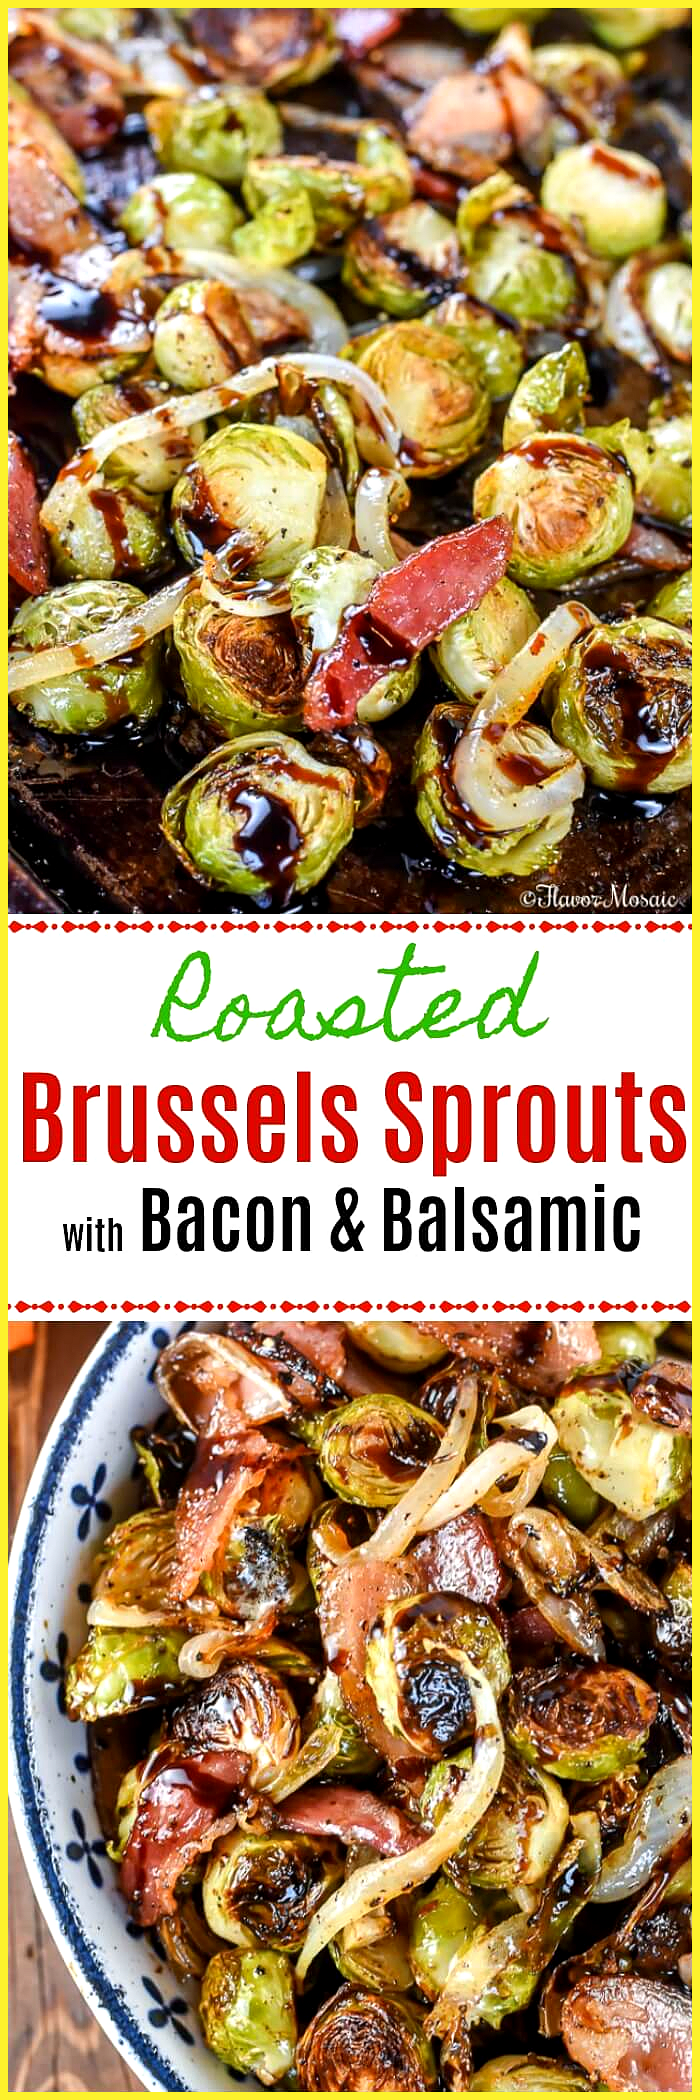 Fried Brussels sprouts with bacon and balsamic mosaic #buffalobrusselsprouts